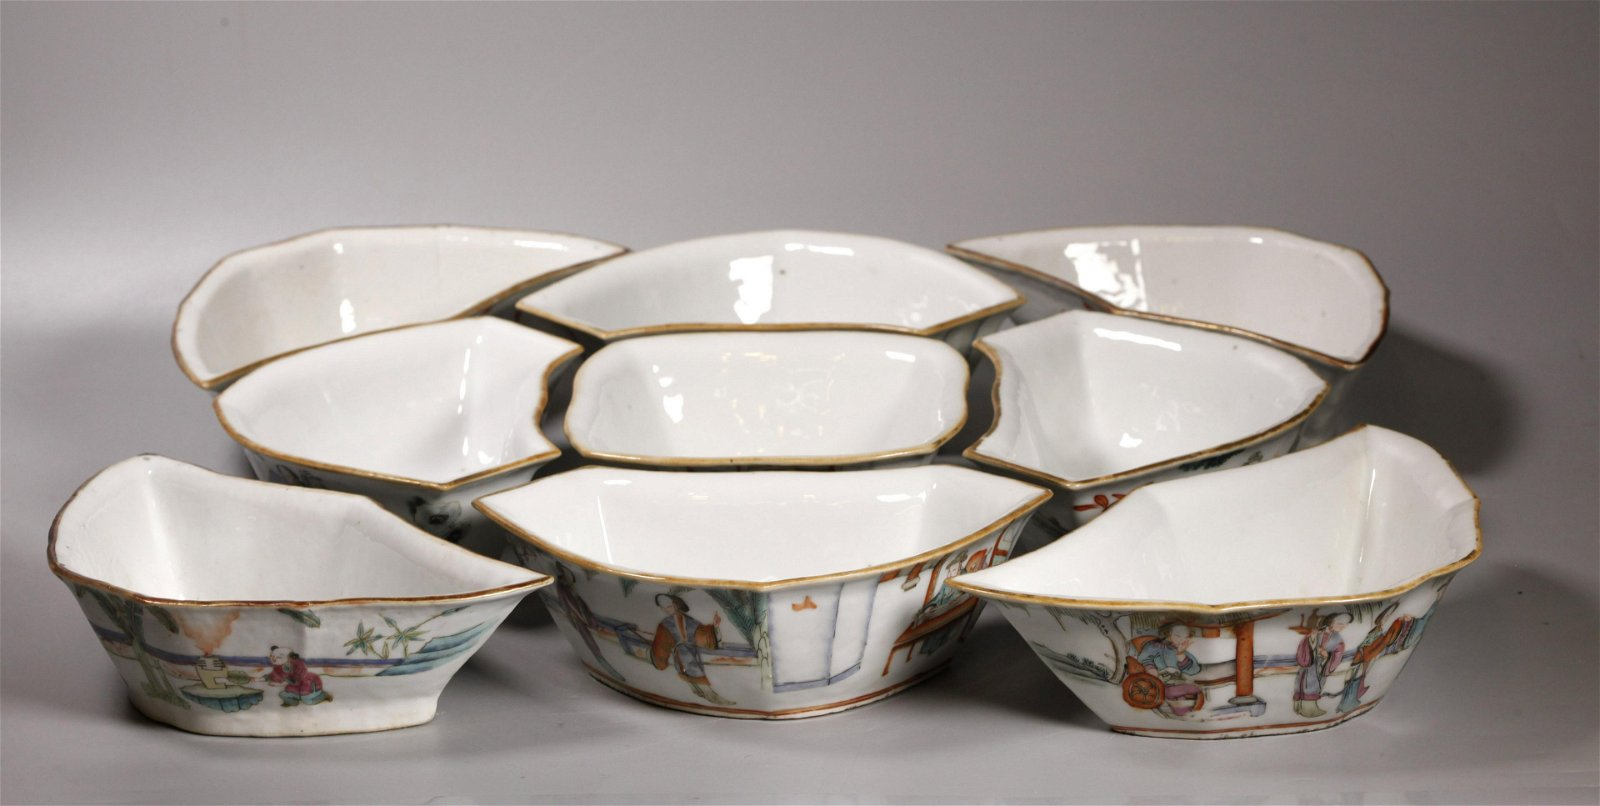 Chinese 19 C Enamel Nine Bowl Porcelain Dinner Set